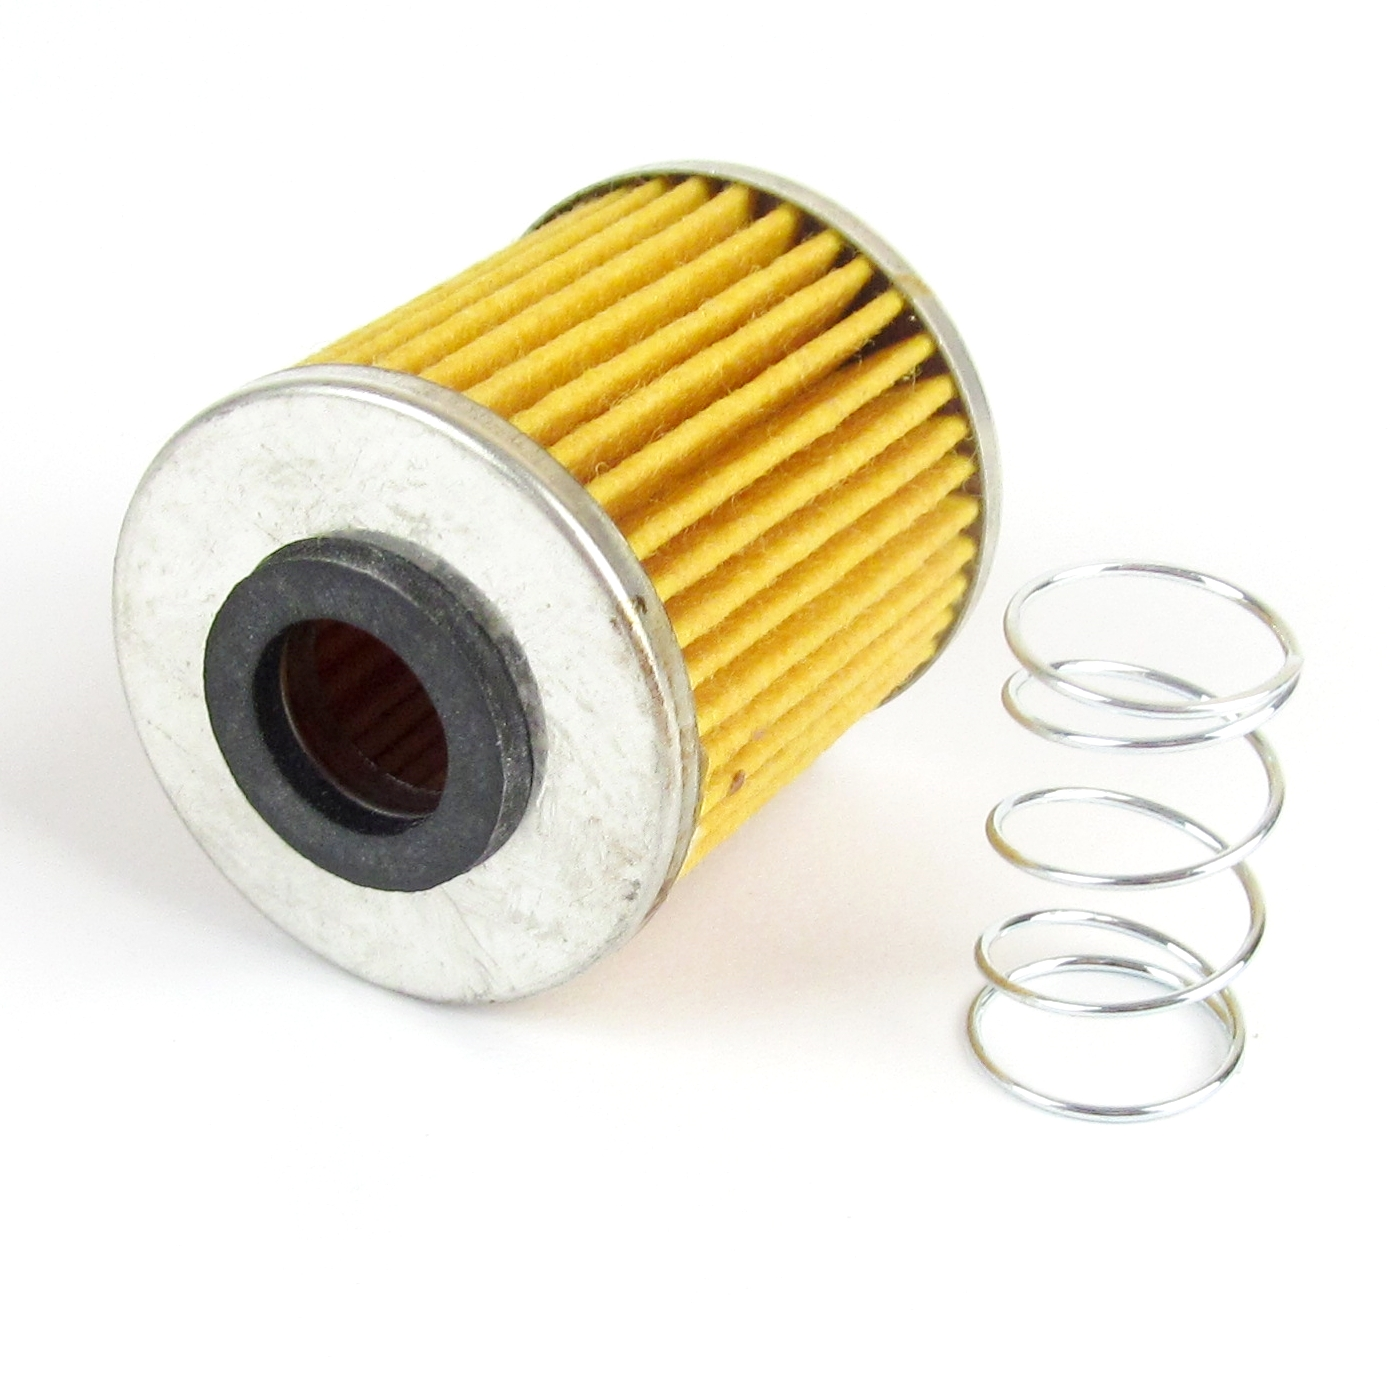 FISPA1 Fuel filter replacement element & spring (small type)